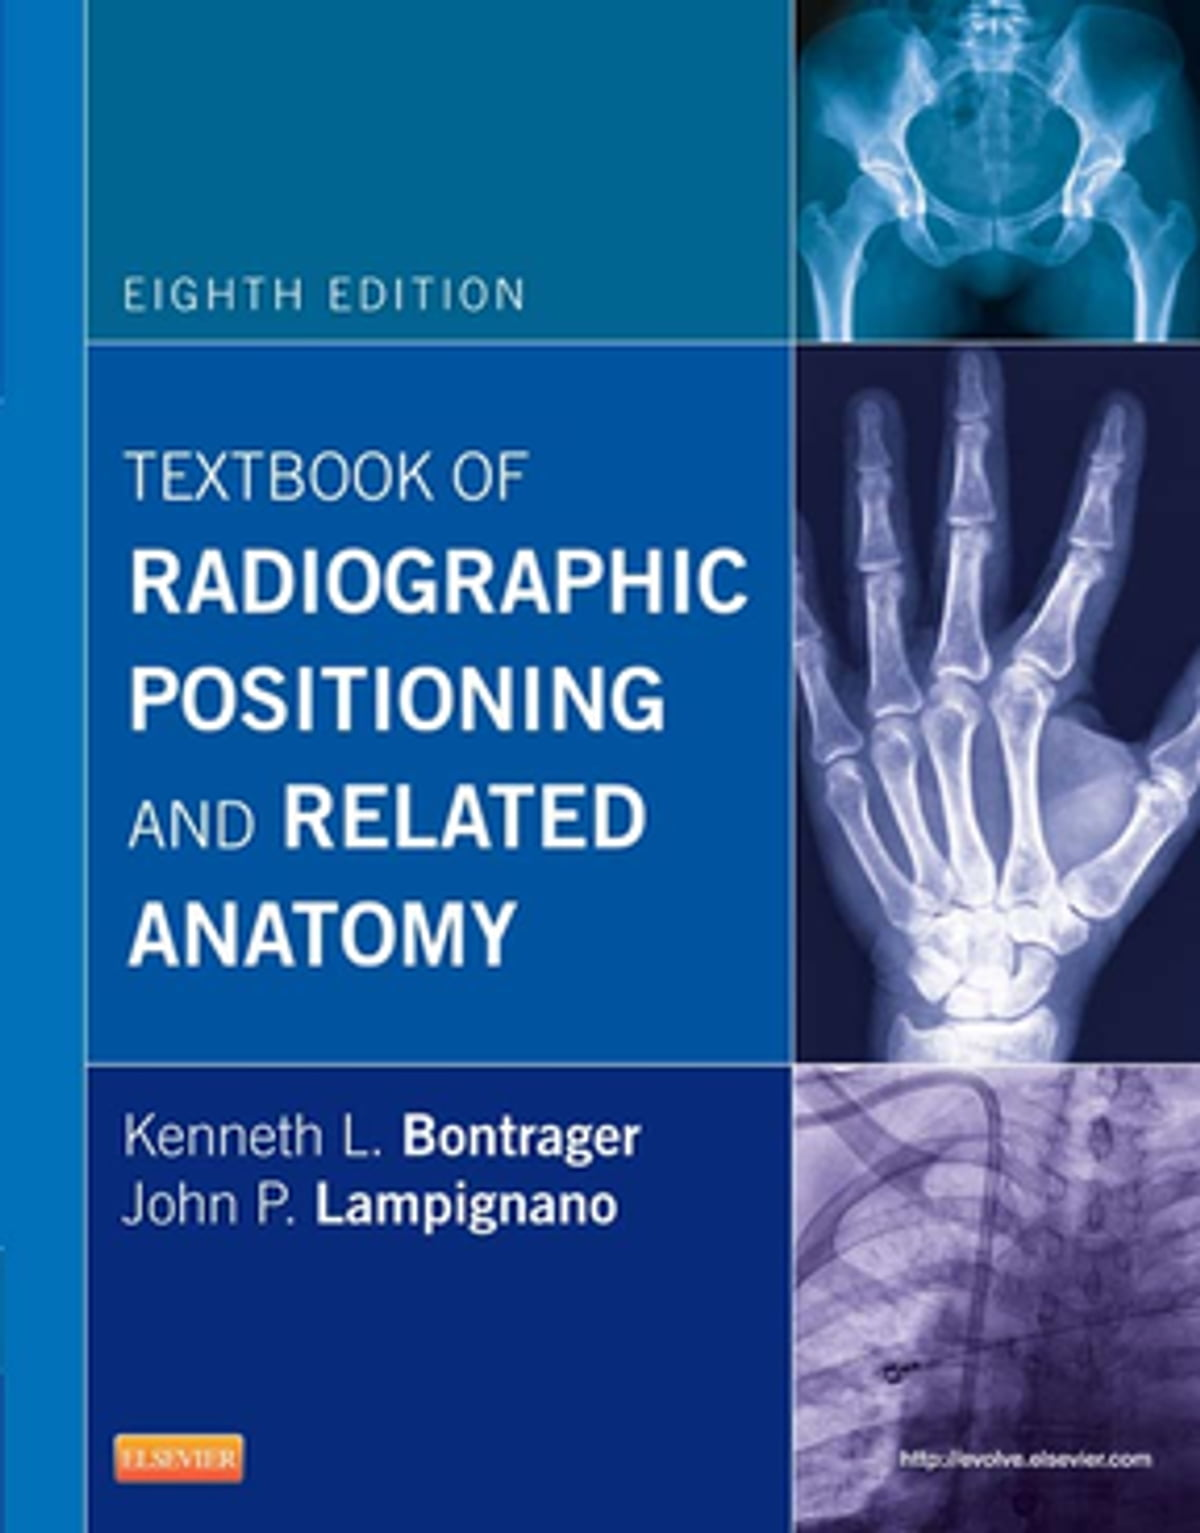 Textbook of Radiographic Positioning and Related Anatomy - E-Book ...